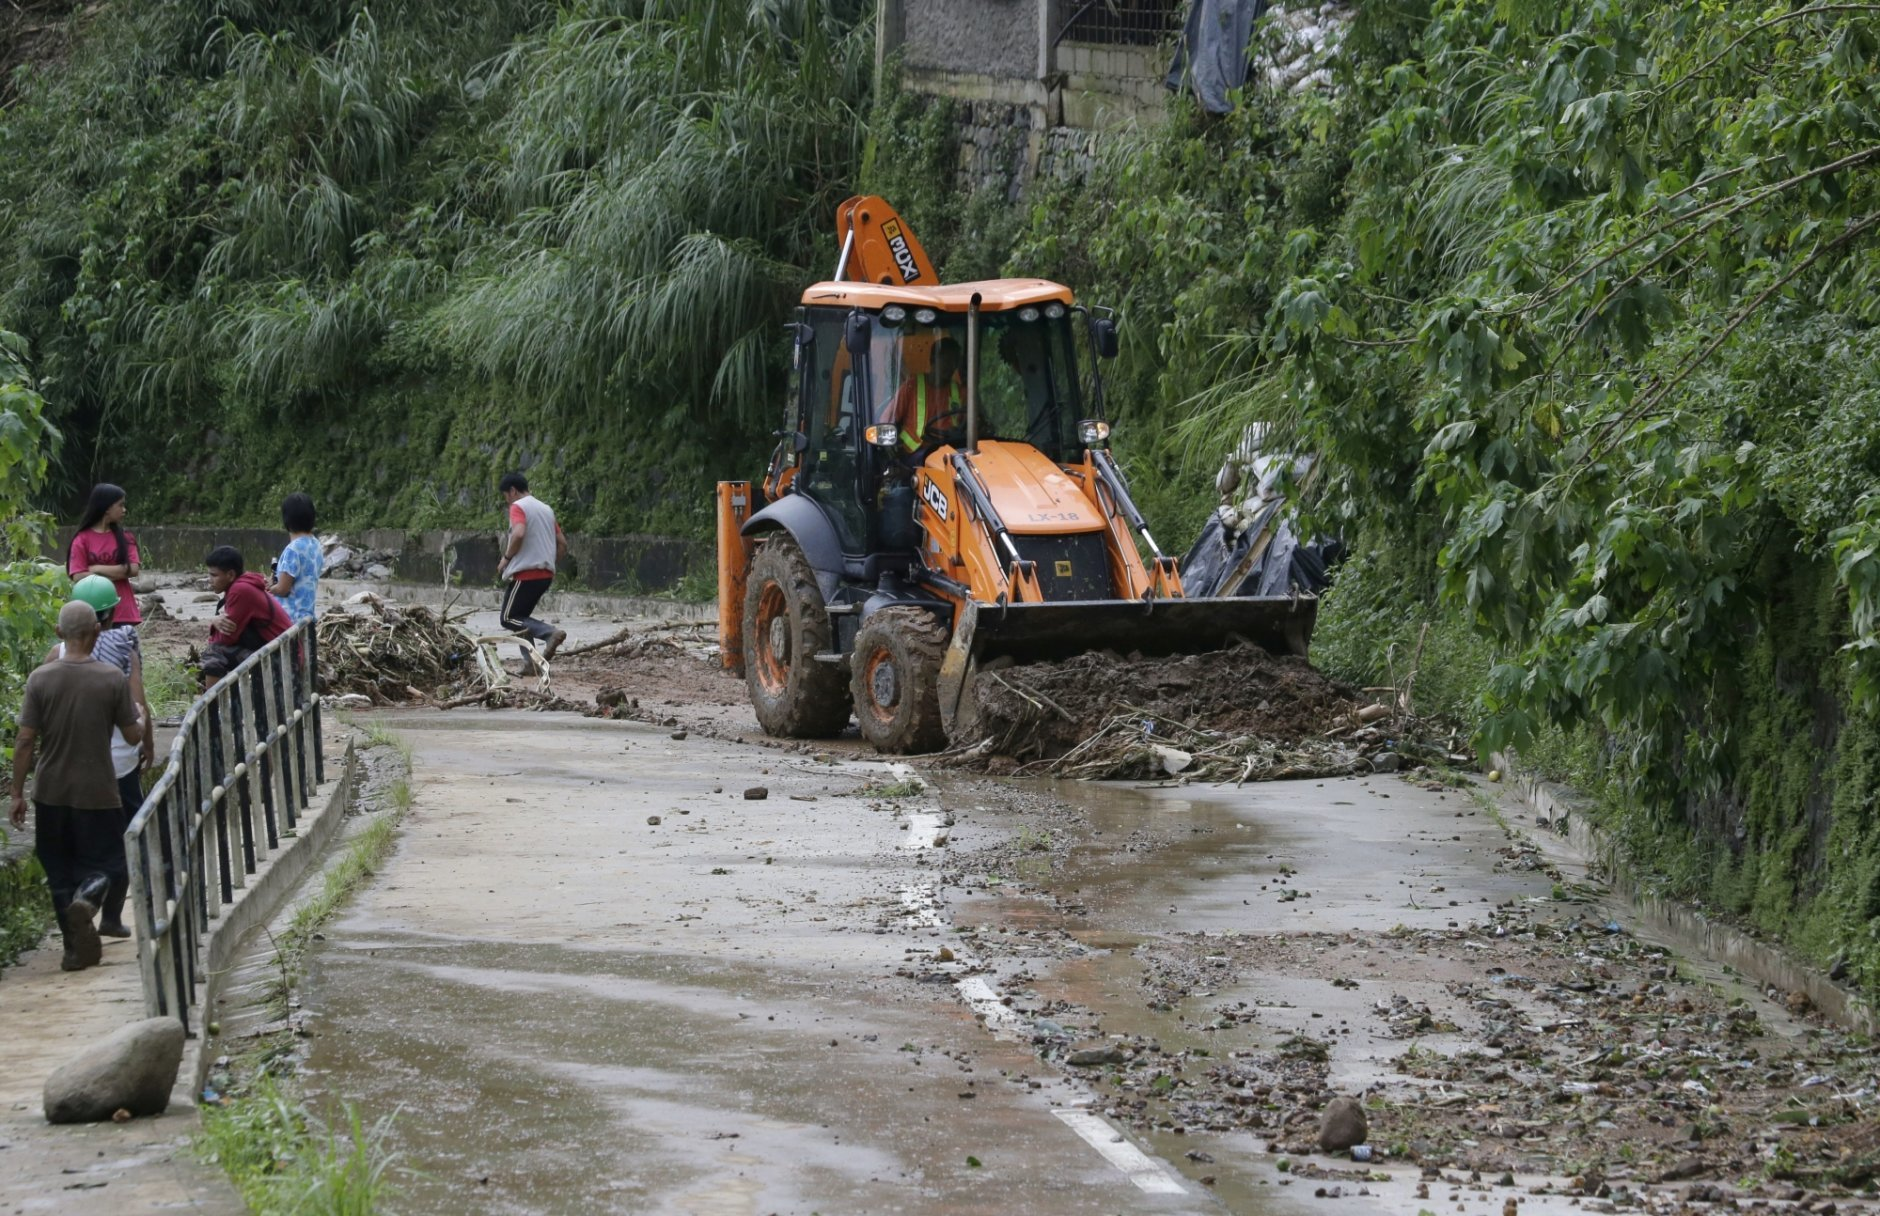 A bulldozer clears an area near the site of a landslide where victims are believed to still be buried after Typhoon Mangkhut barreled across Itogon, Benguet province, northern Philippines, Monday, Sept. 17, 2018. Itogon Mayor Victorio Palangdan said that at the height of the typhoon's onslaught Saturday afternoon, dozens of people, mostly miners and their families, rushed into an old three-story building in the village of Ucab. The building, a former mining bunkhouse that had been transformed into a chapel, was obliterated when part of a mountain slope collapsed. (AP Photo/Aaron Favila)